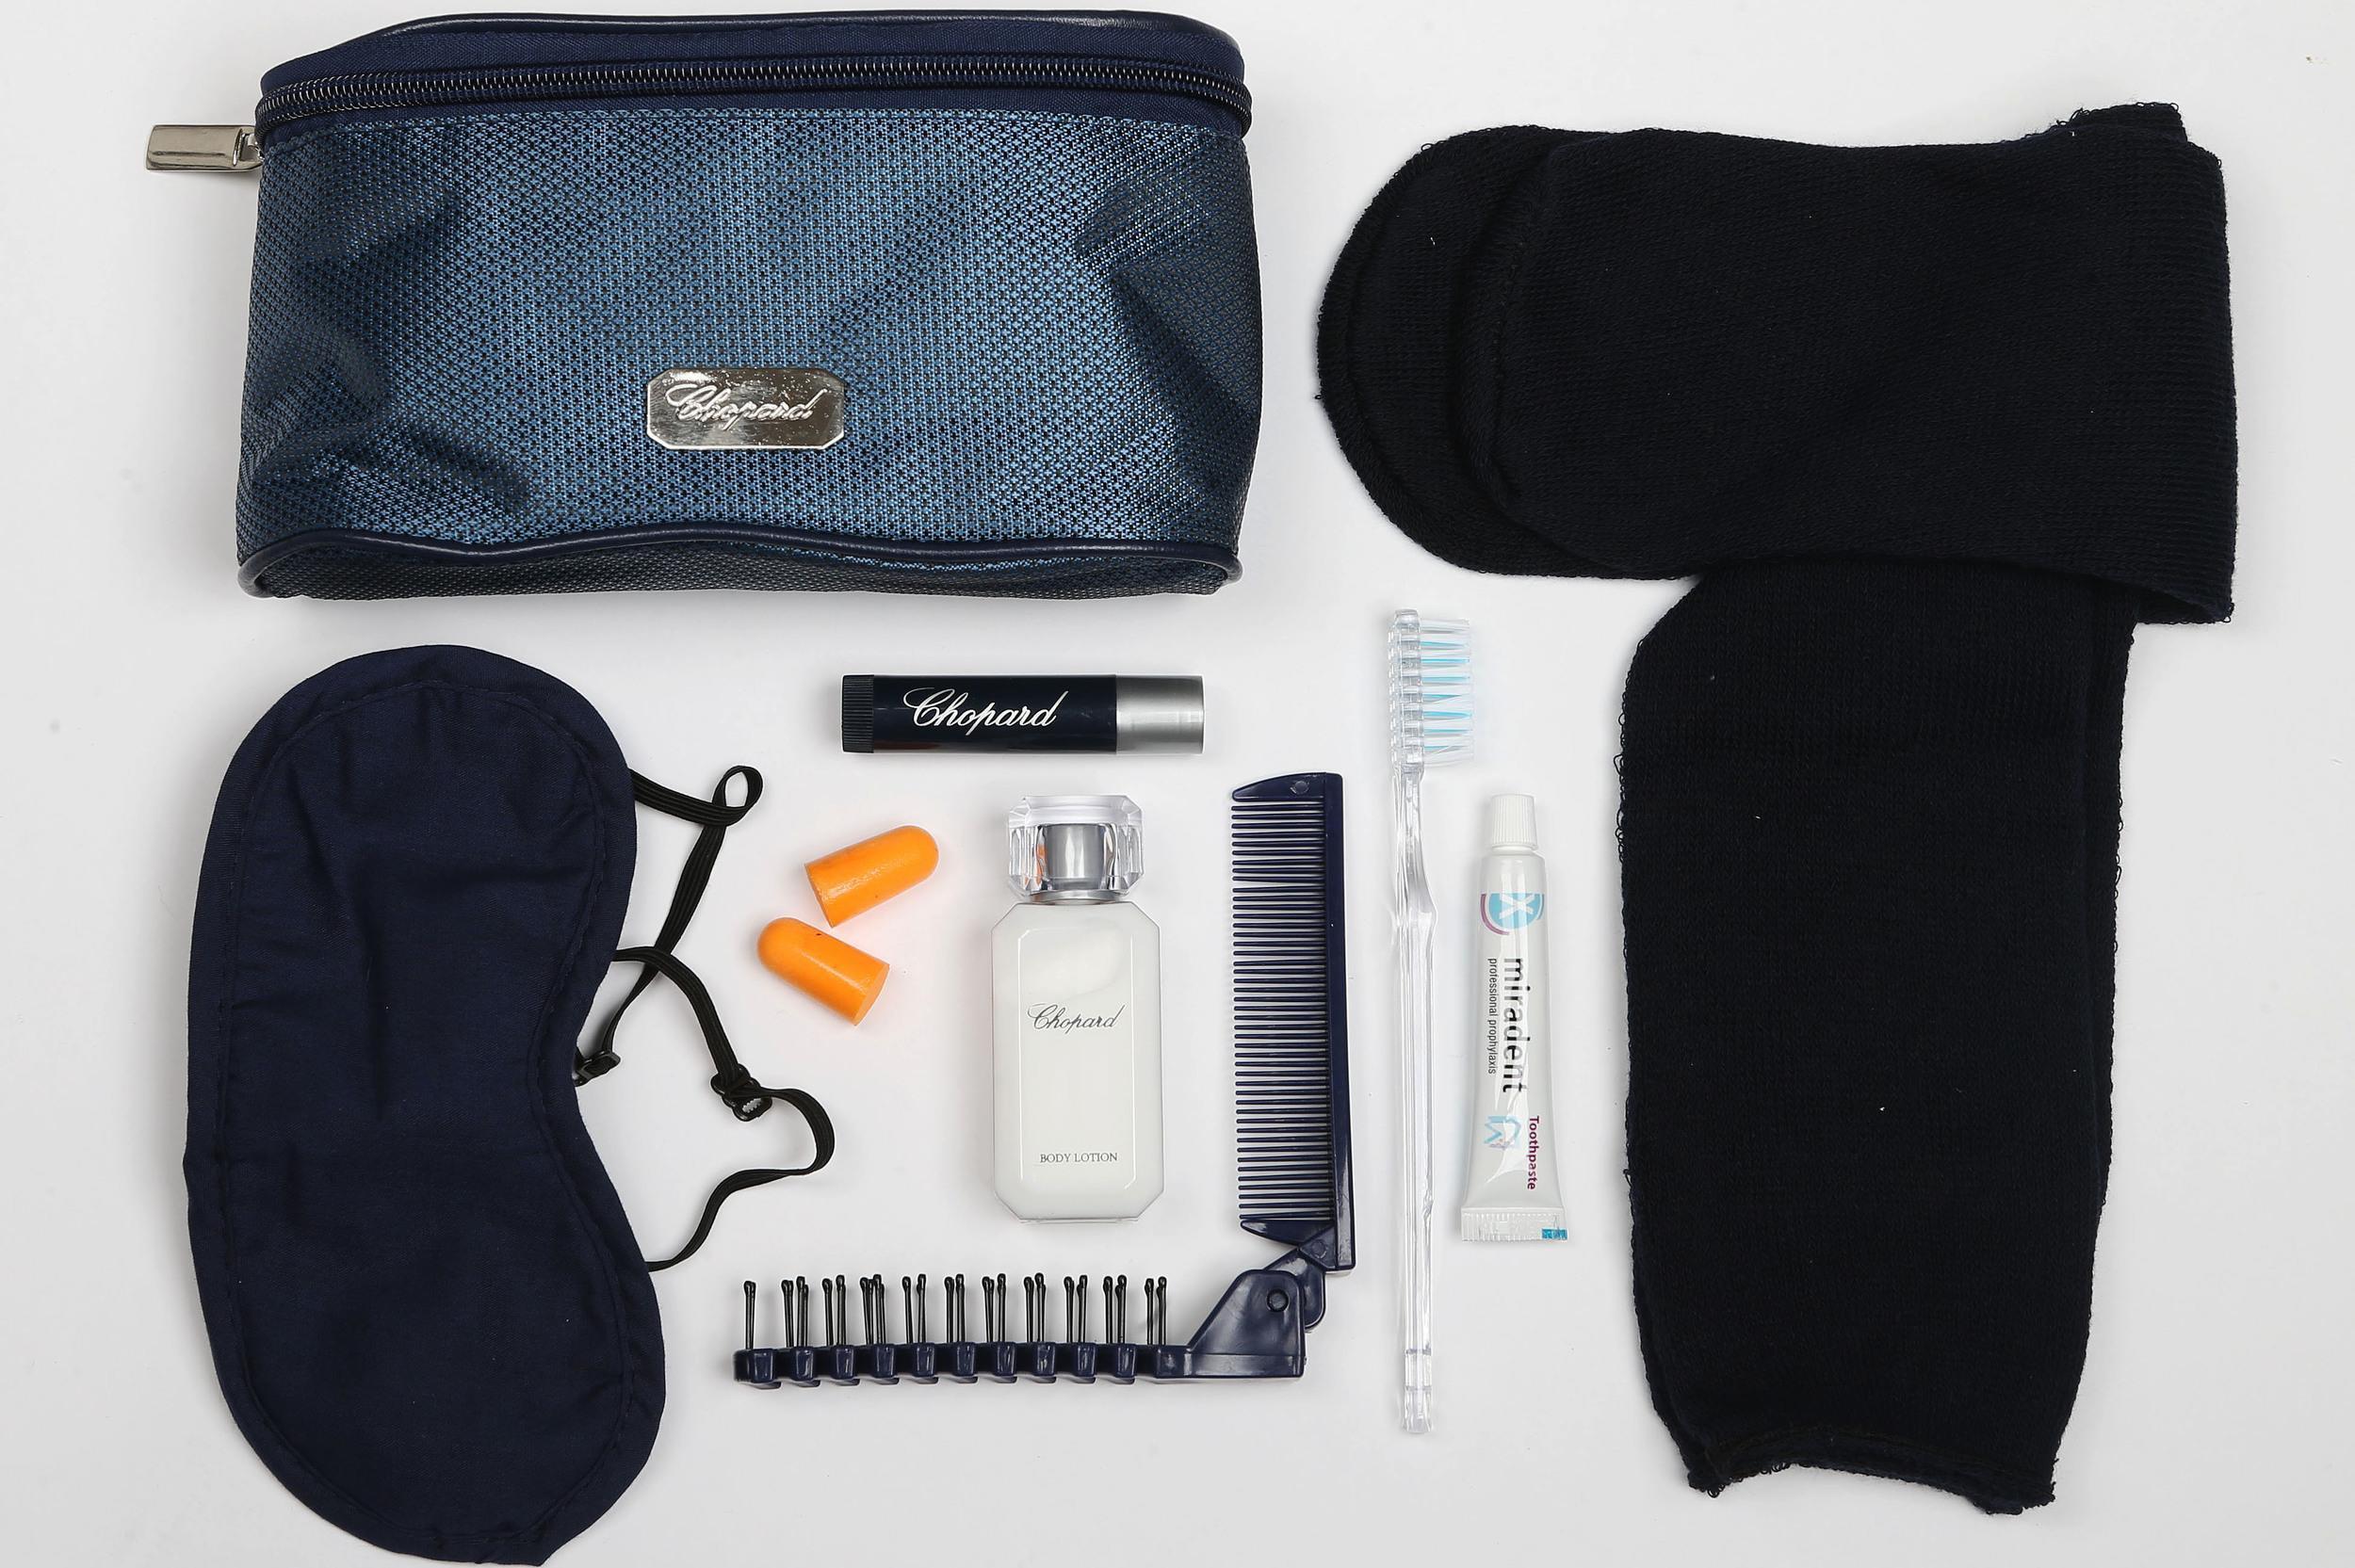 <p><strong>What do you get?</strong> Socks, eye mask, ear plugs, comb/brush, toothbrush, toothpaste, Chopard lip balm and body lotion<br /> <strong>Best bit of the kit?</strong> Chopard skin care products kick this amenity kit up a notch.</p>